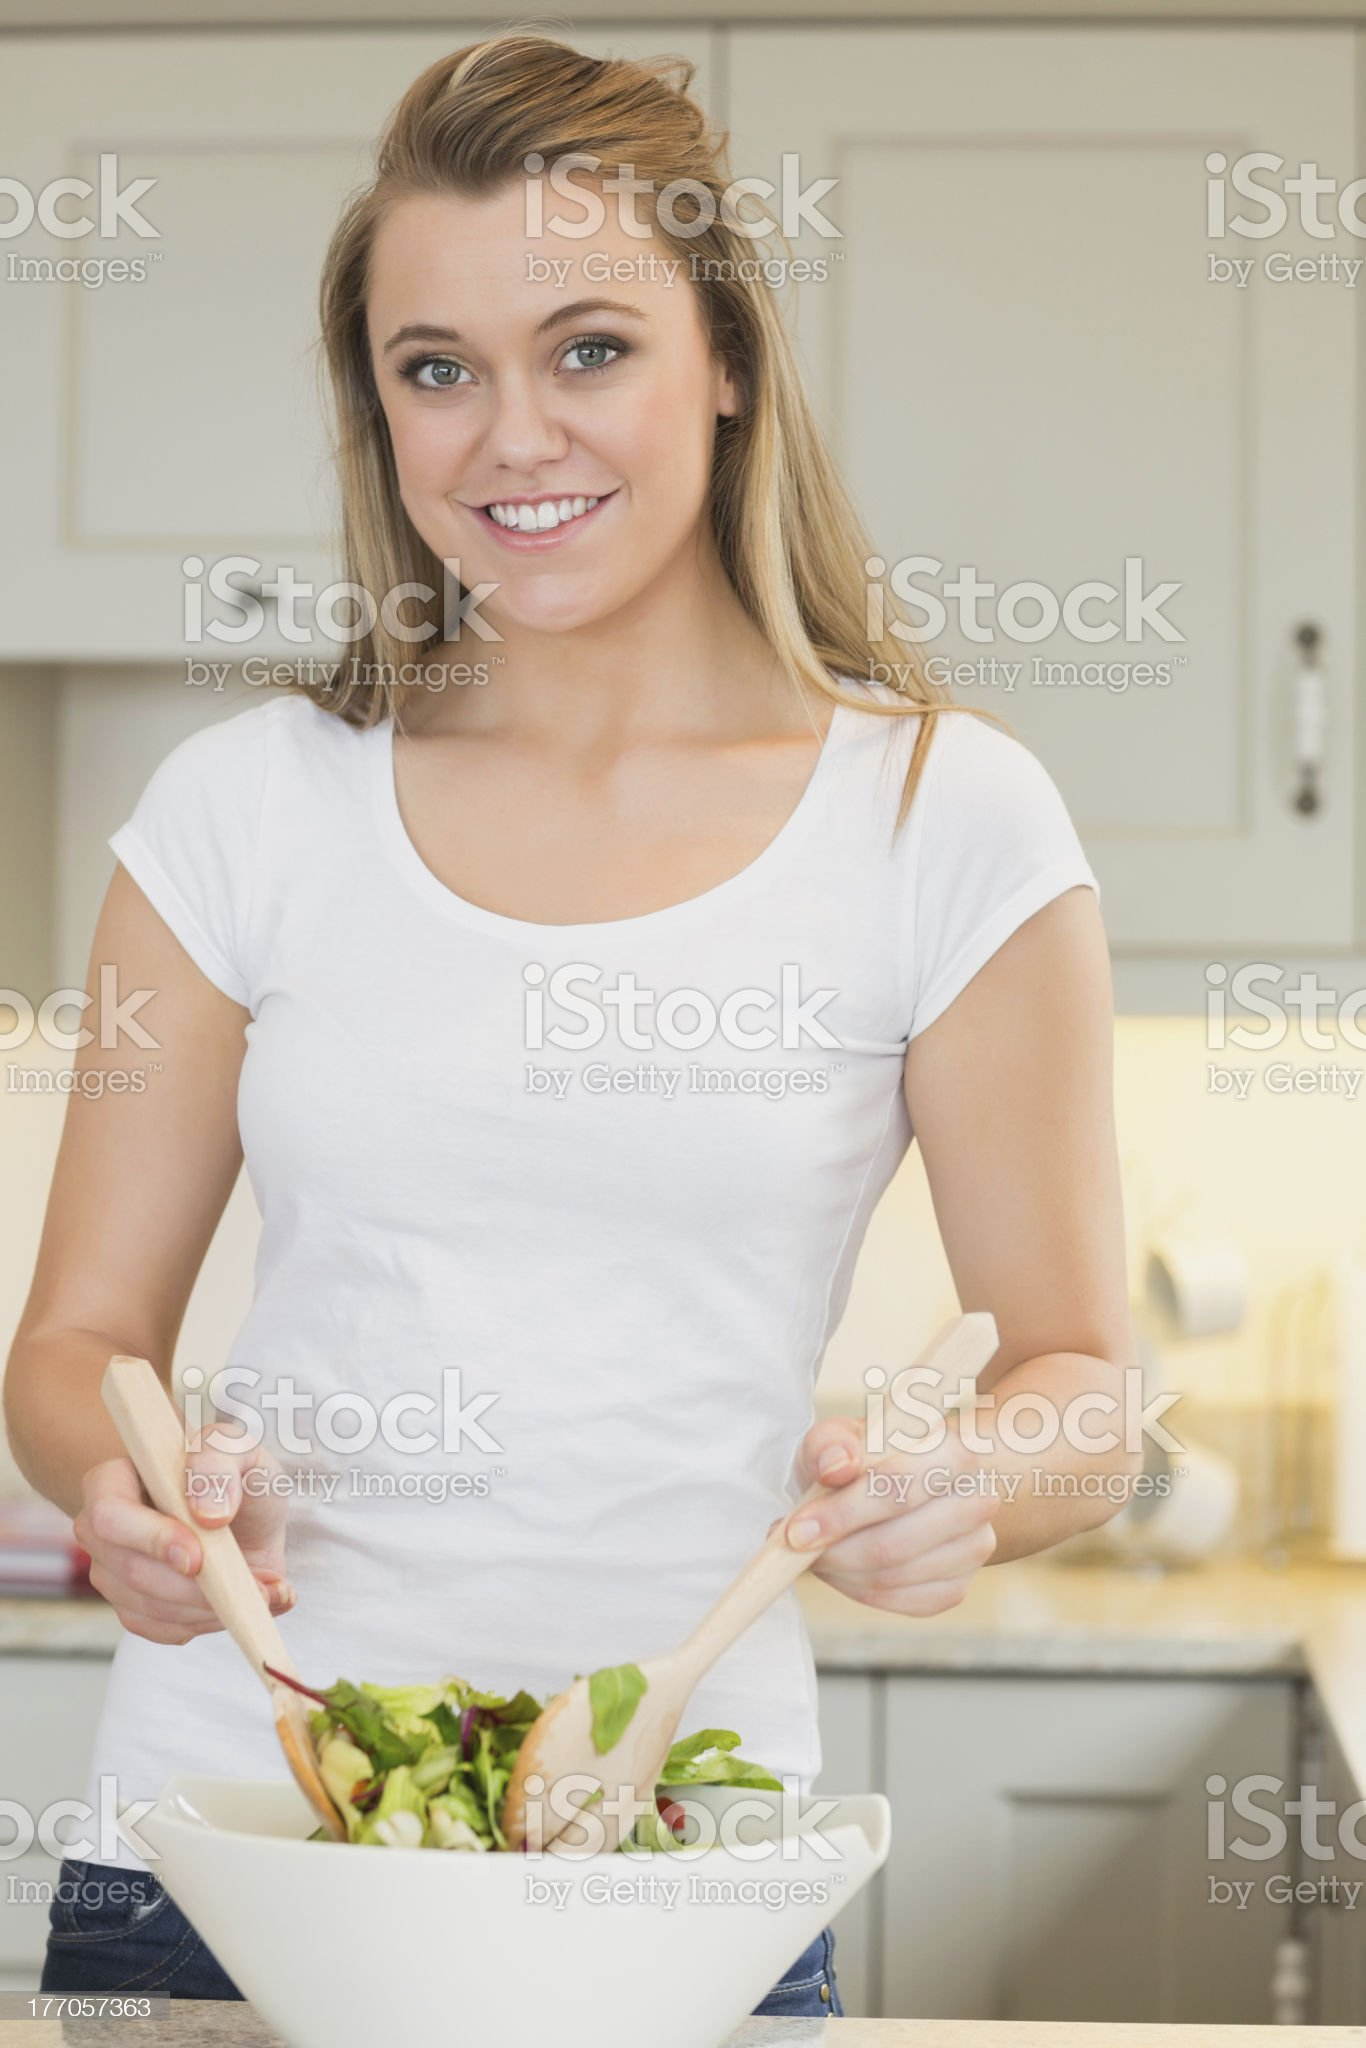 Woman tossing salad royalty-free stock photo